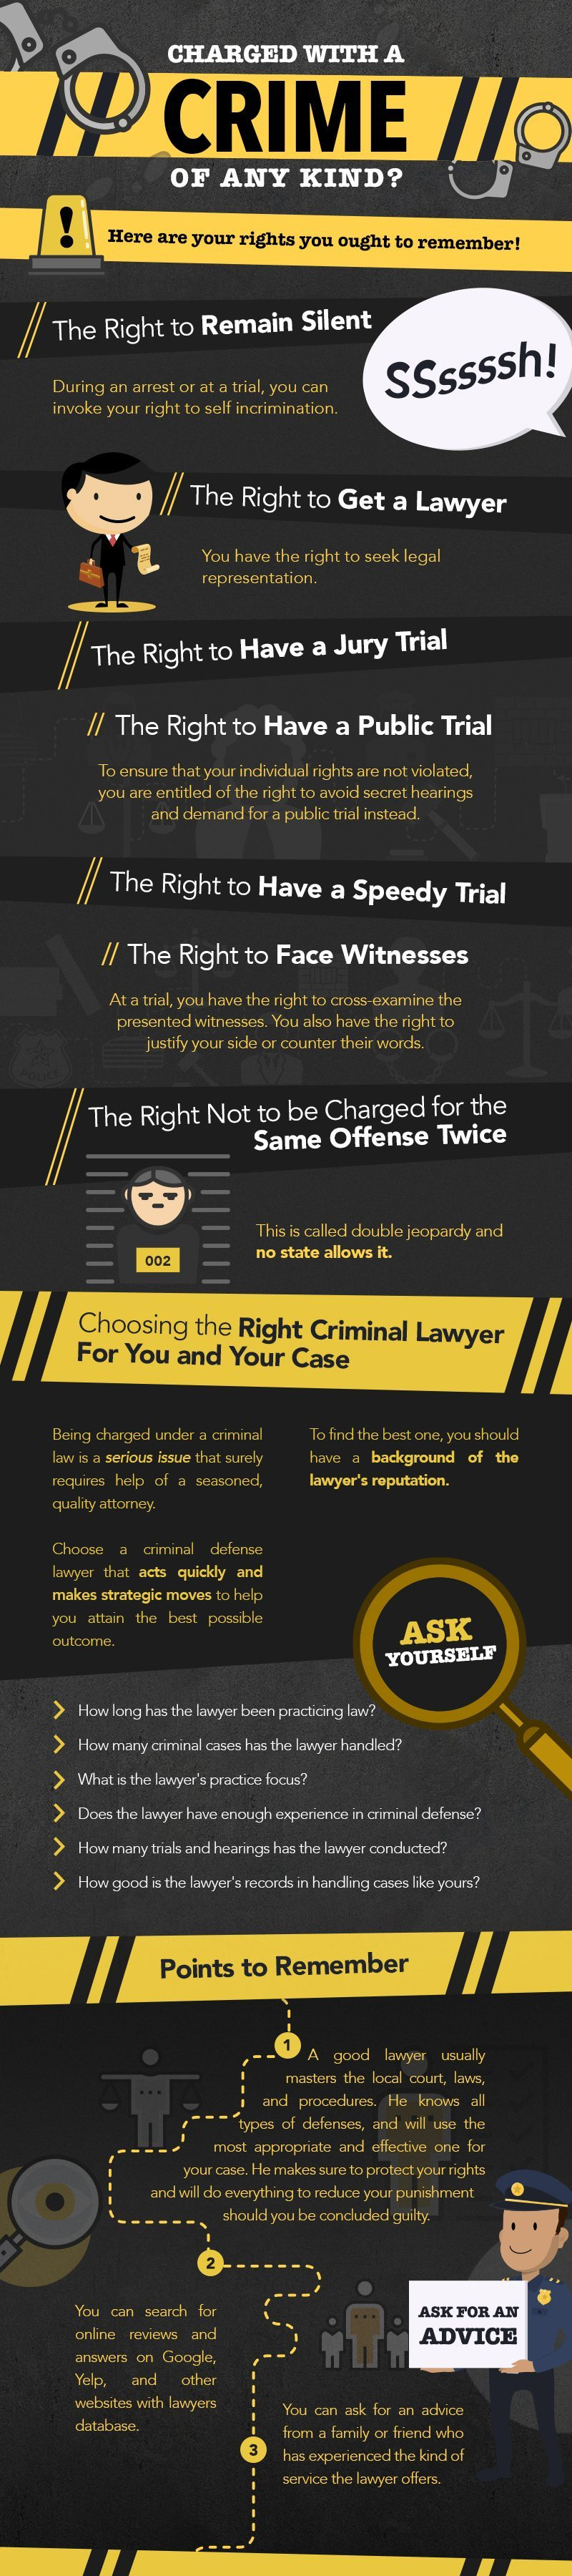 Rights you ought to remember infographic